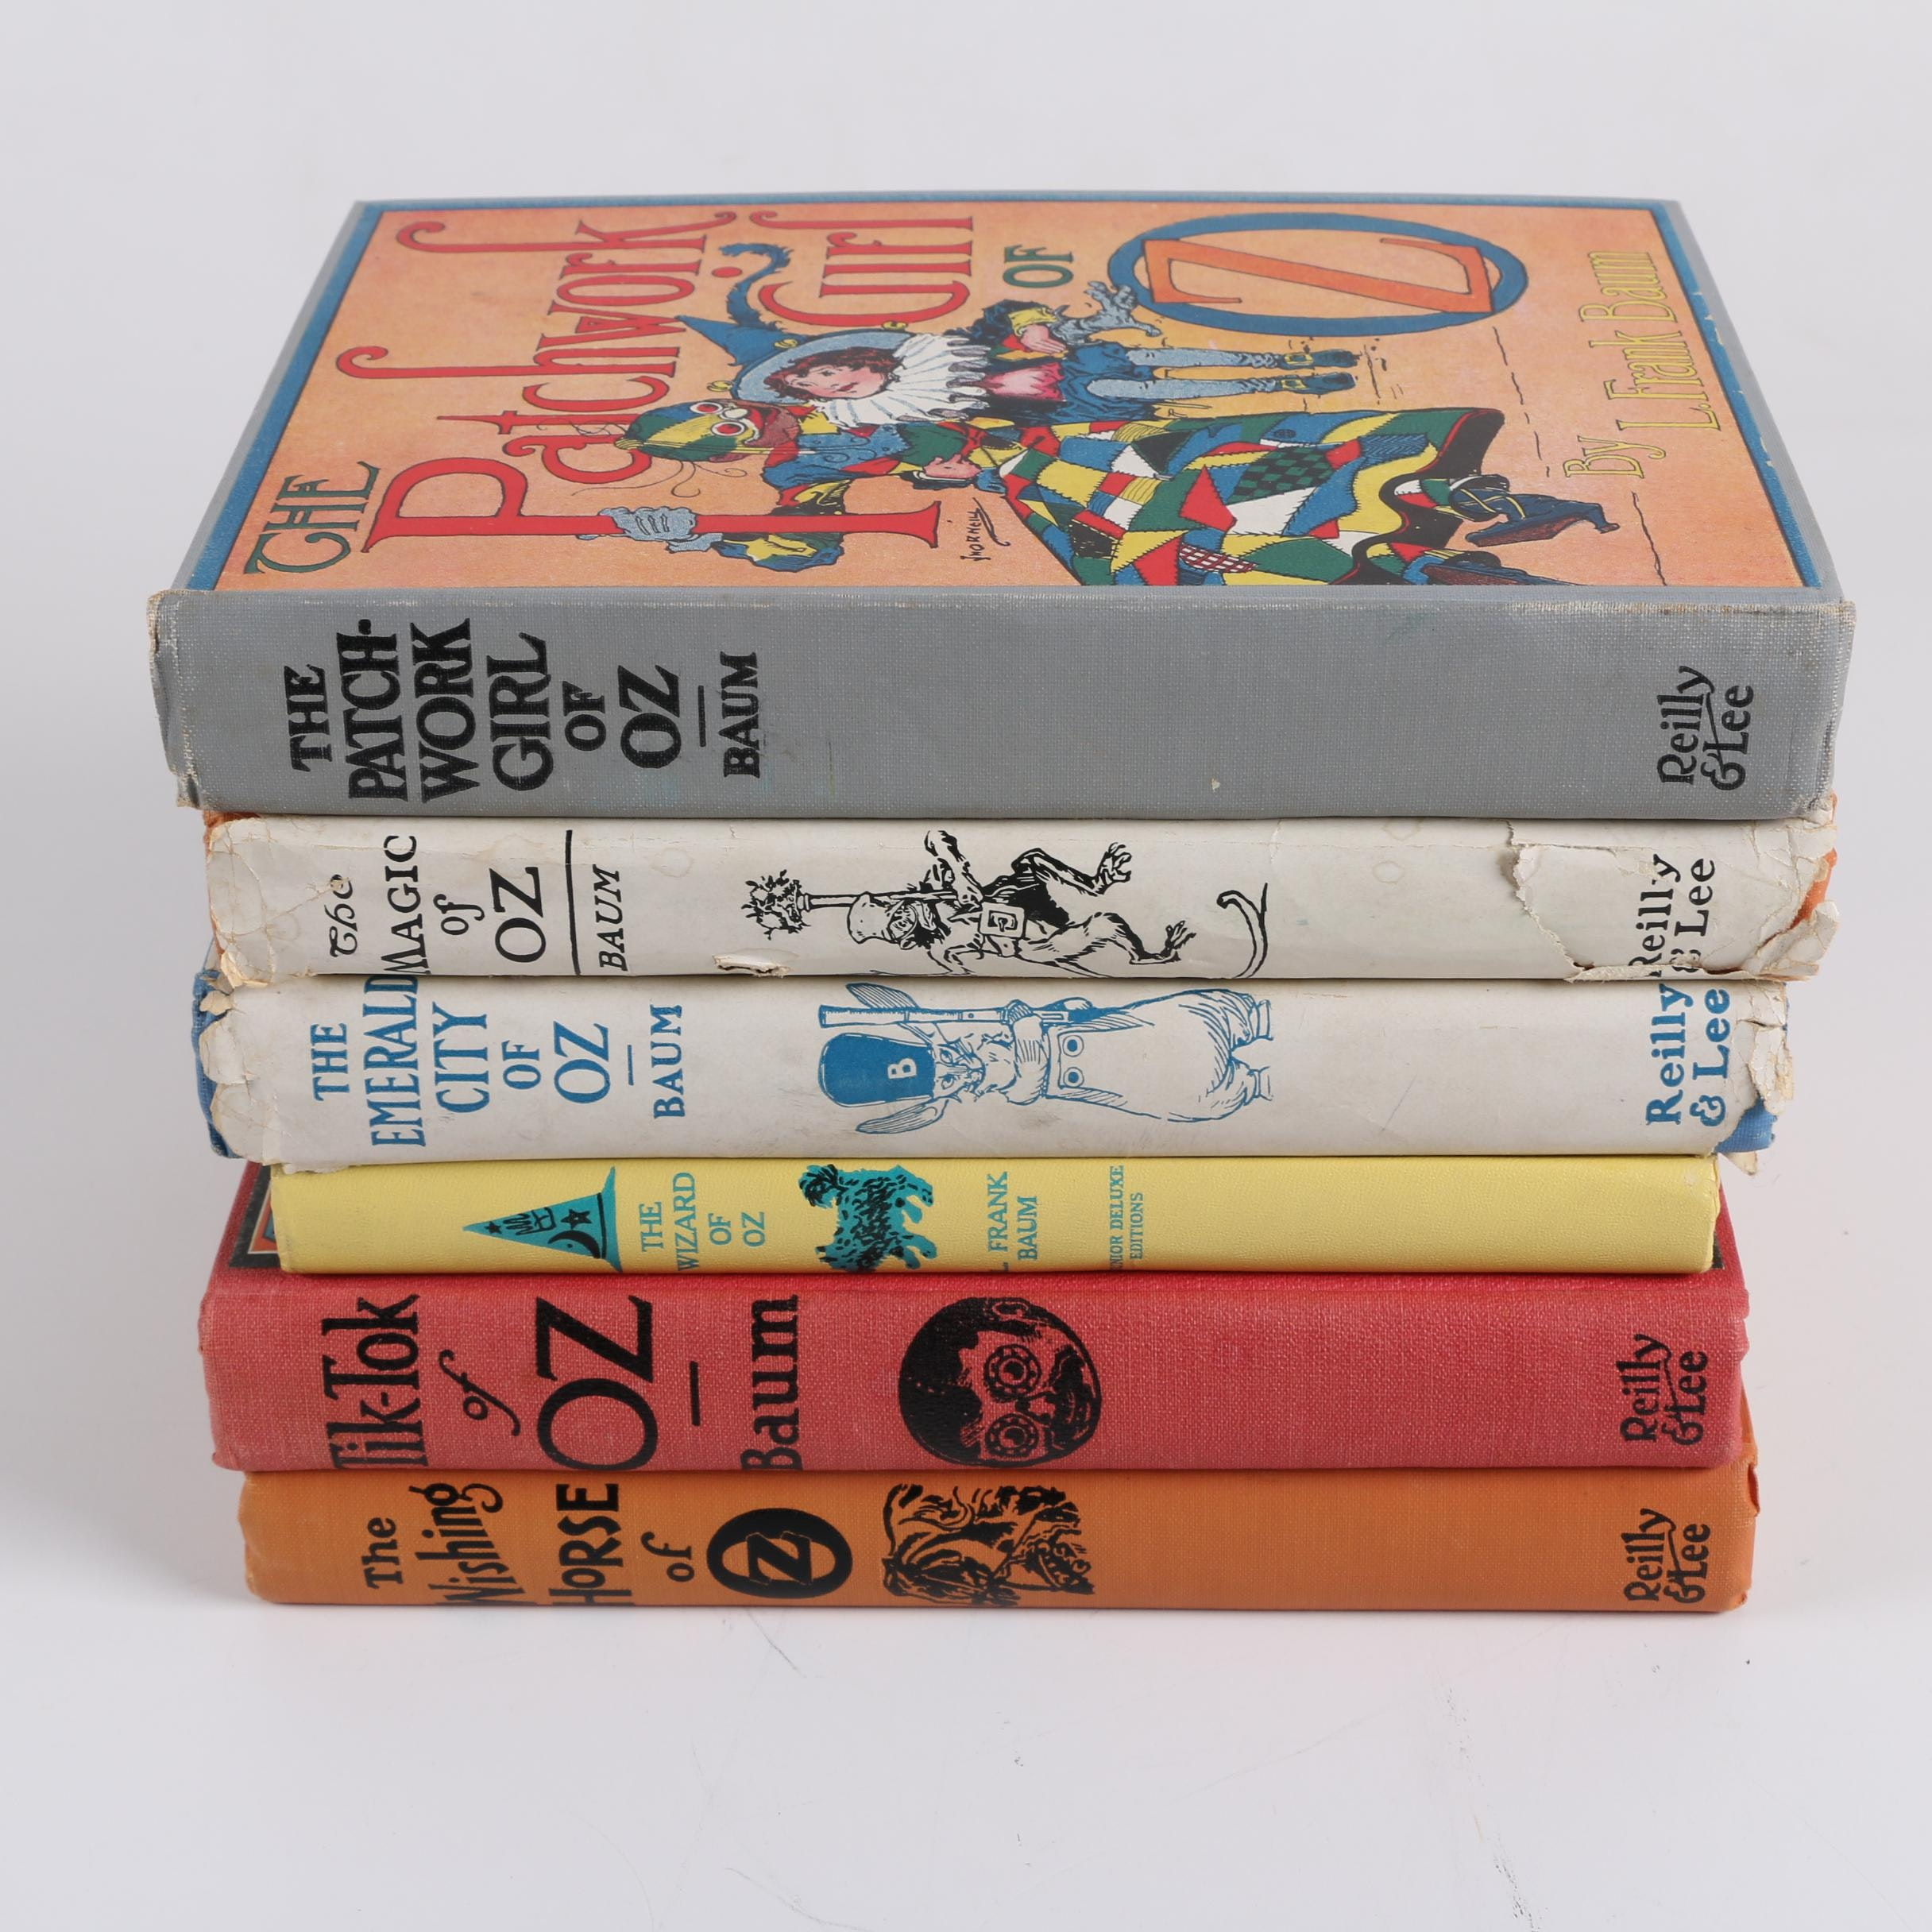 """Vintage """"The Wizard of Oz"""" Series Books by L. Frank Baum"""